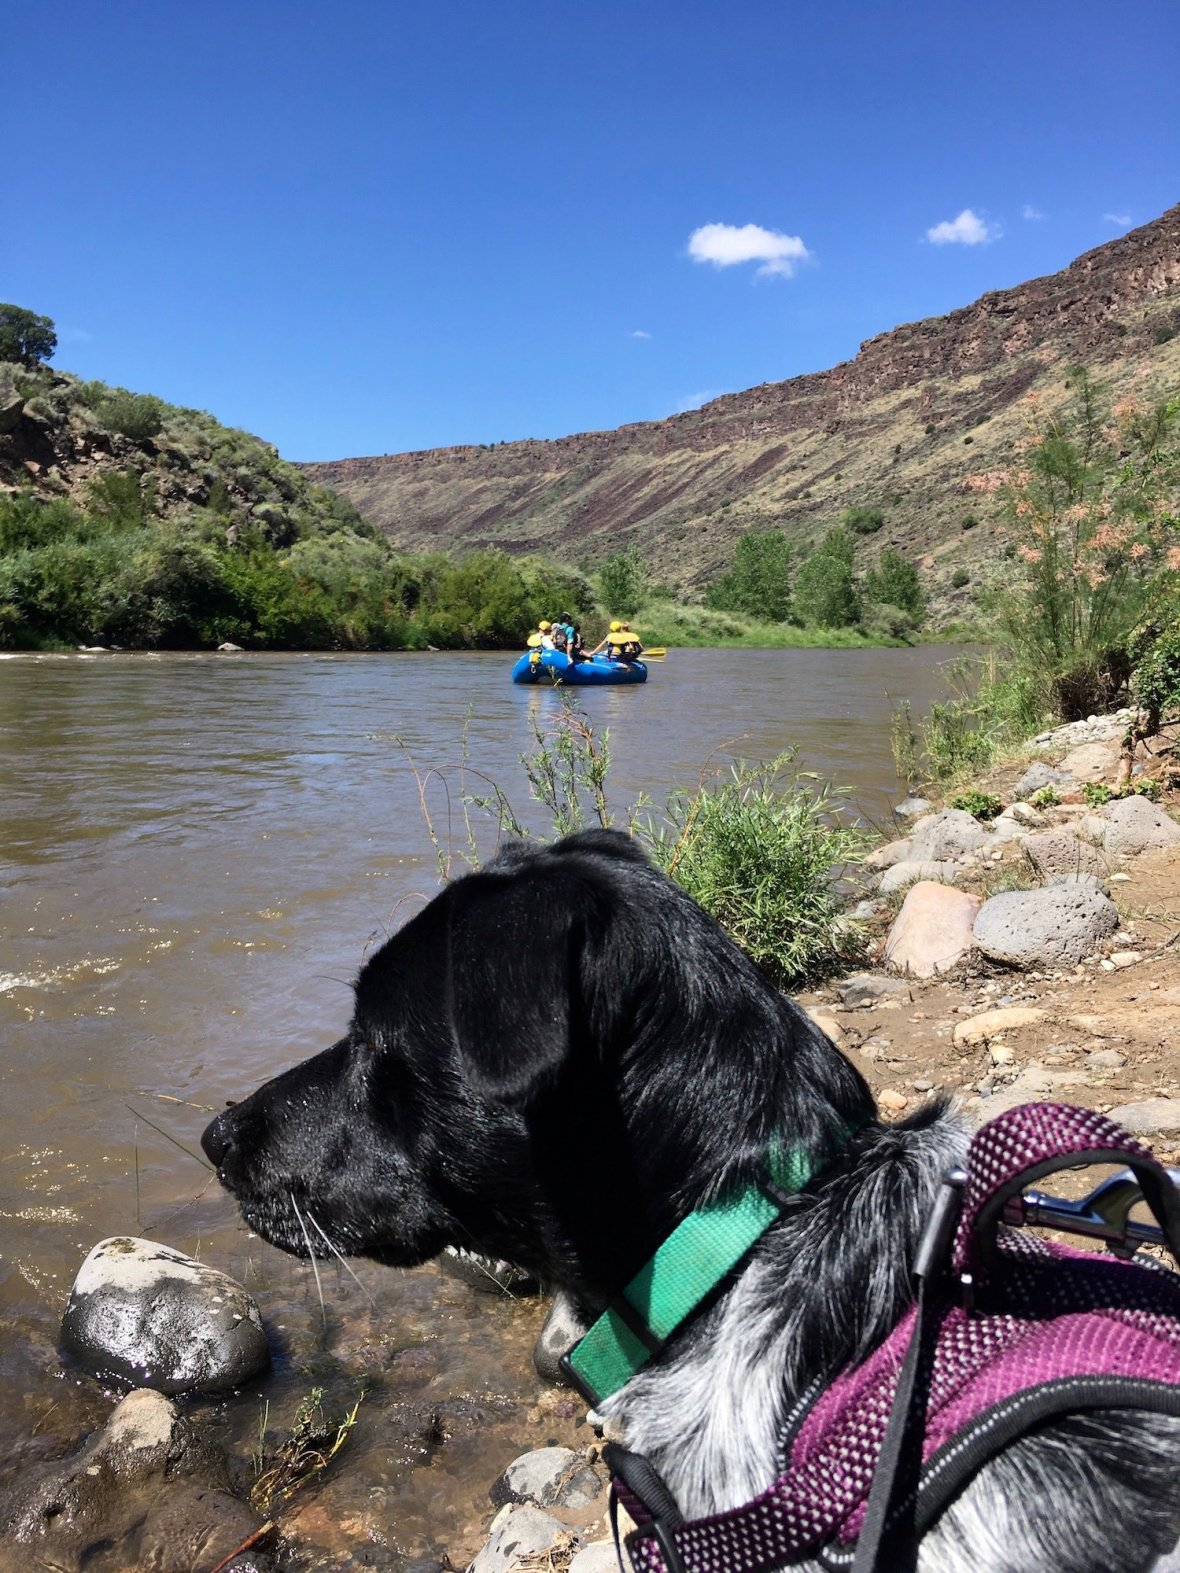 Juniper the Wonder Dog and rafters on the Rio Grande